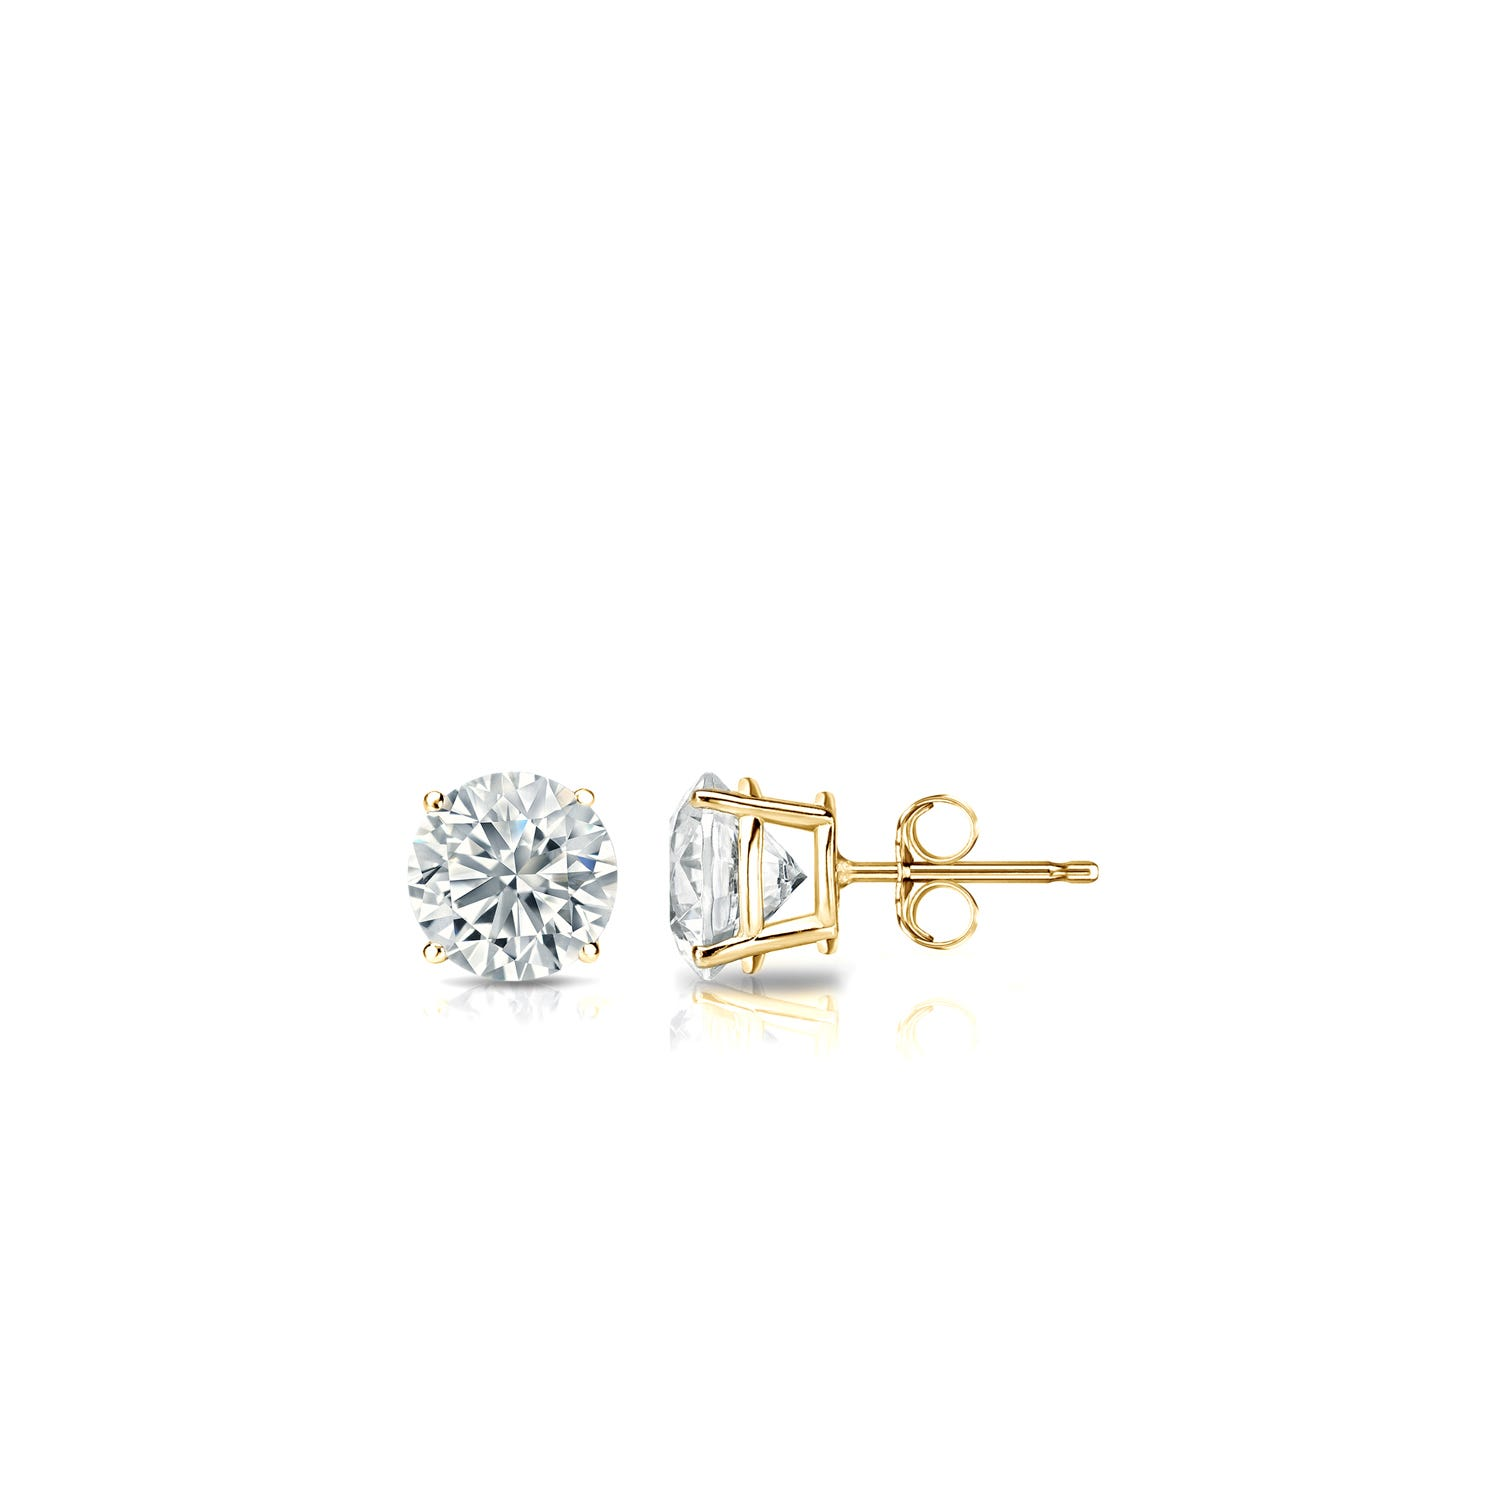 Diamond 1/10ctw. Round Solitaire Stud Earrings (I-J, I2) 18k Yellow Gold